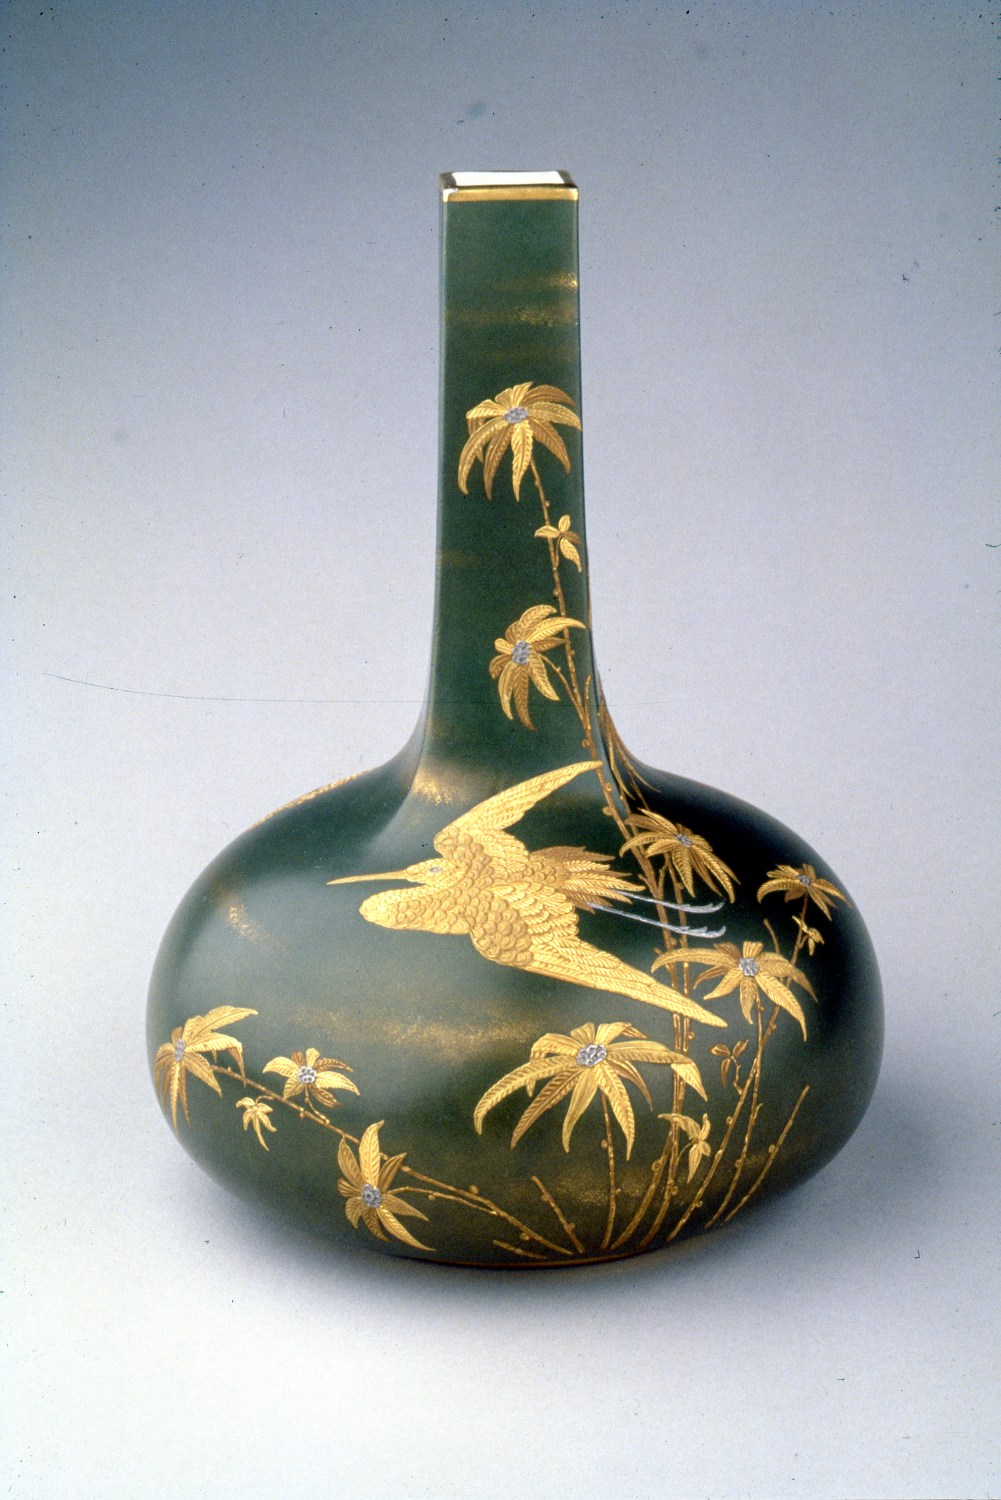 Ott & Brewer, Etruria Works, Vase, belleek porcelain, about 1885, H 10 in., Priv Collection